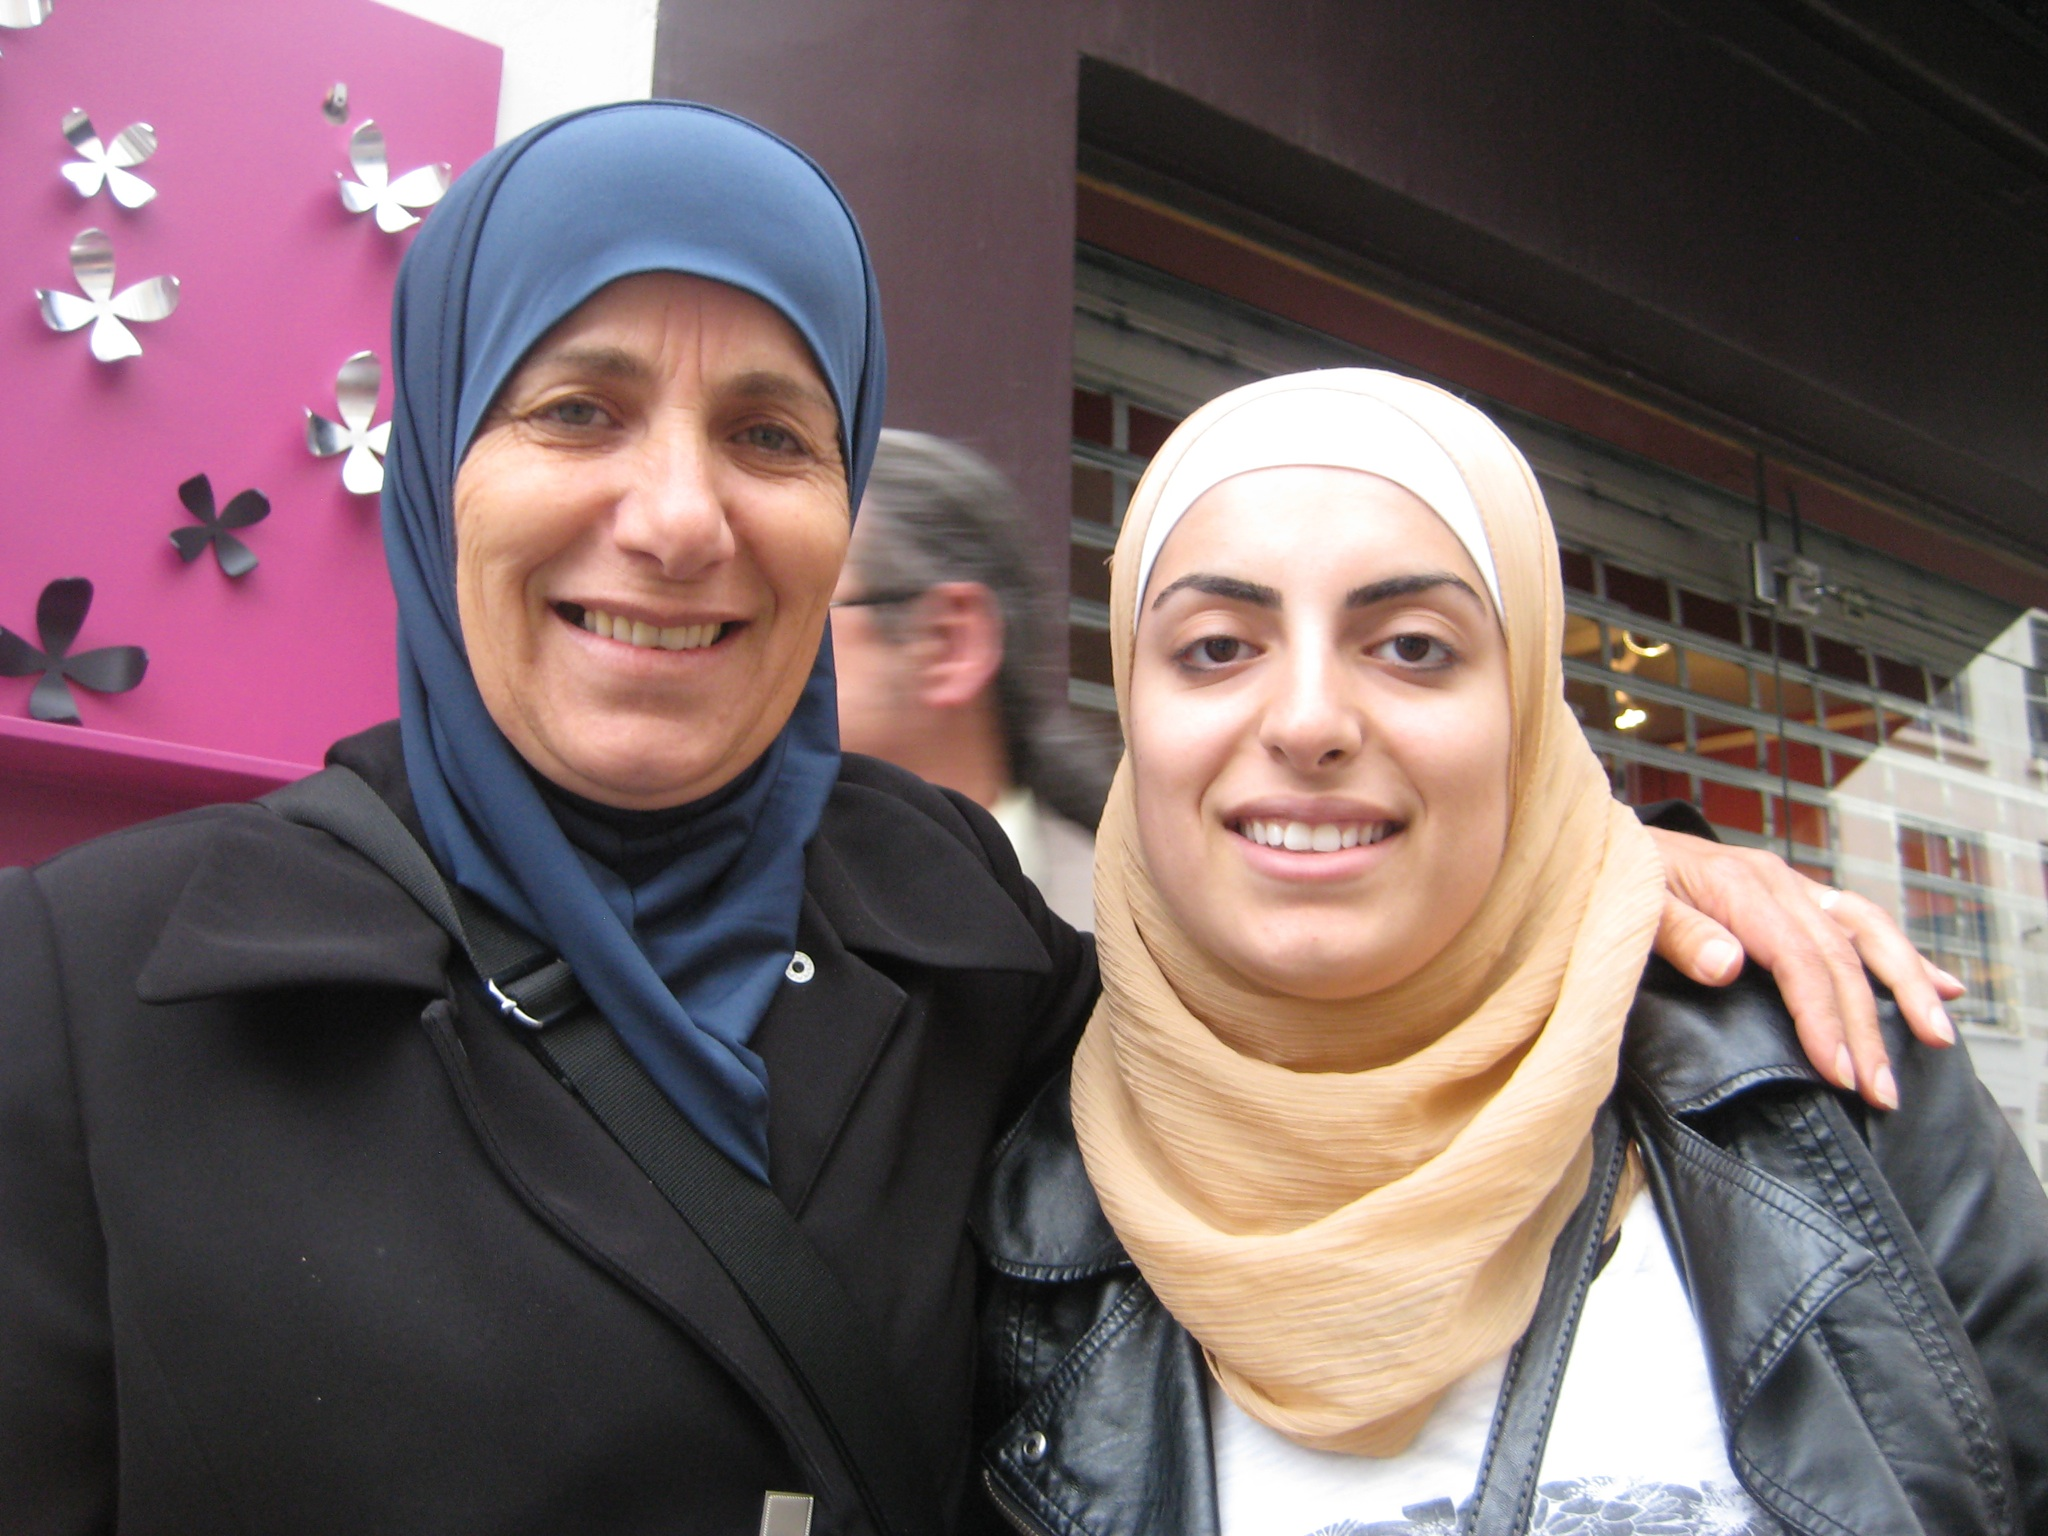 Sonia and Maha El-Birani